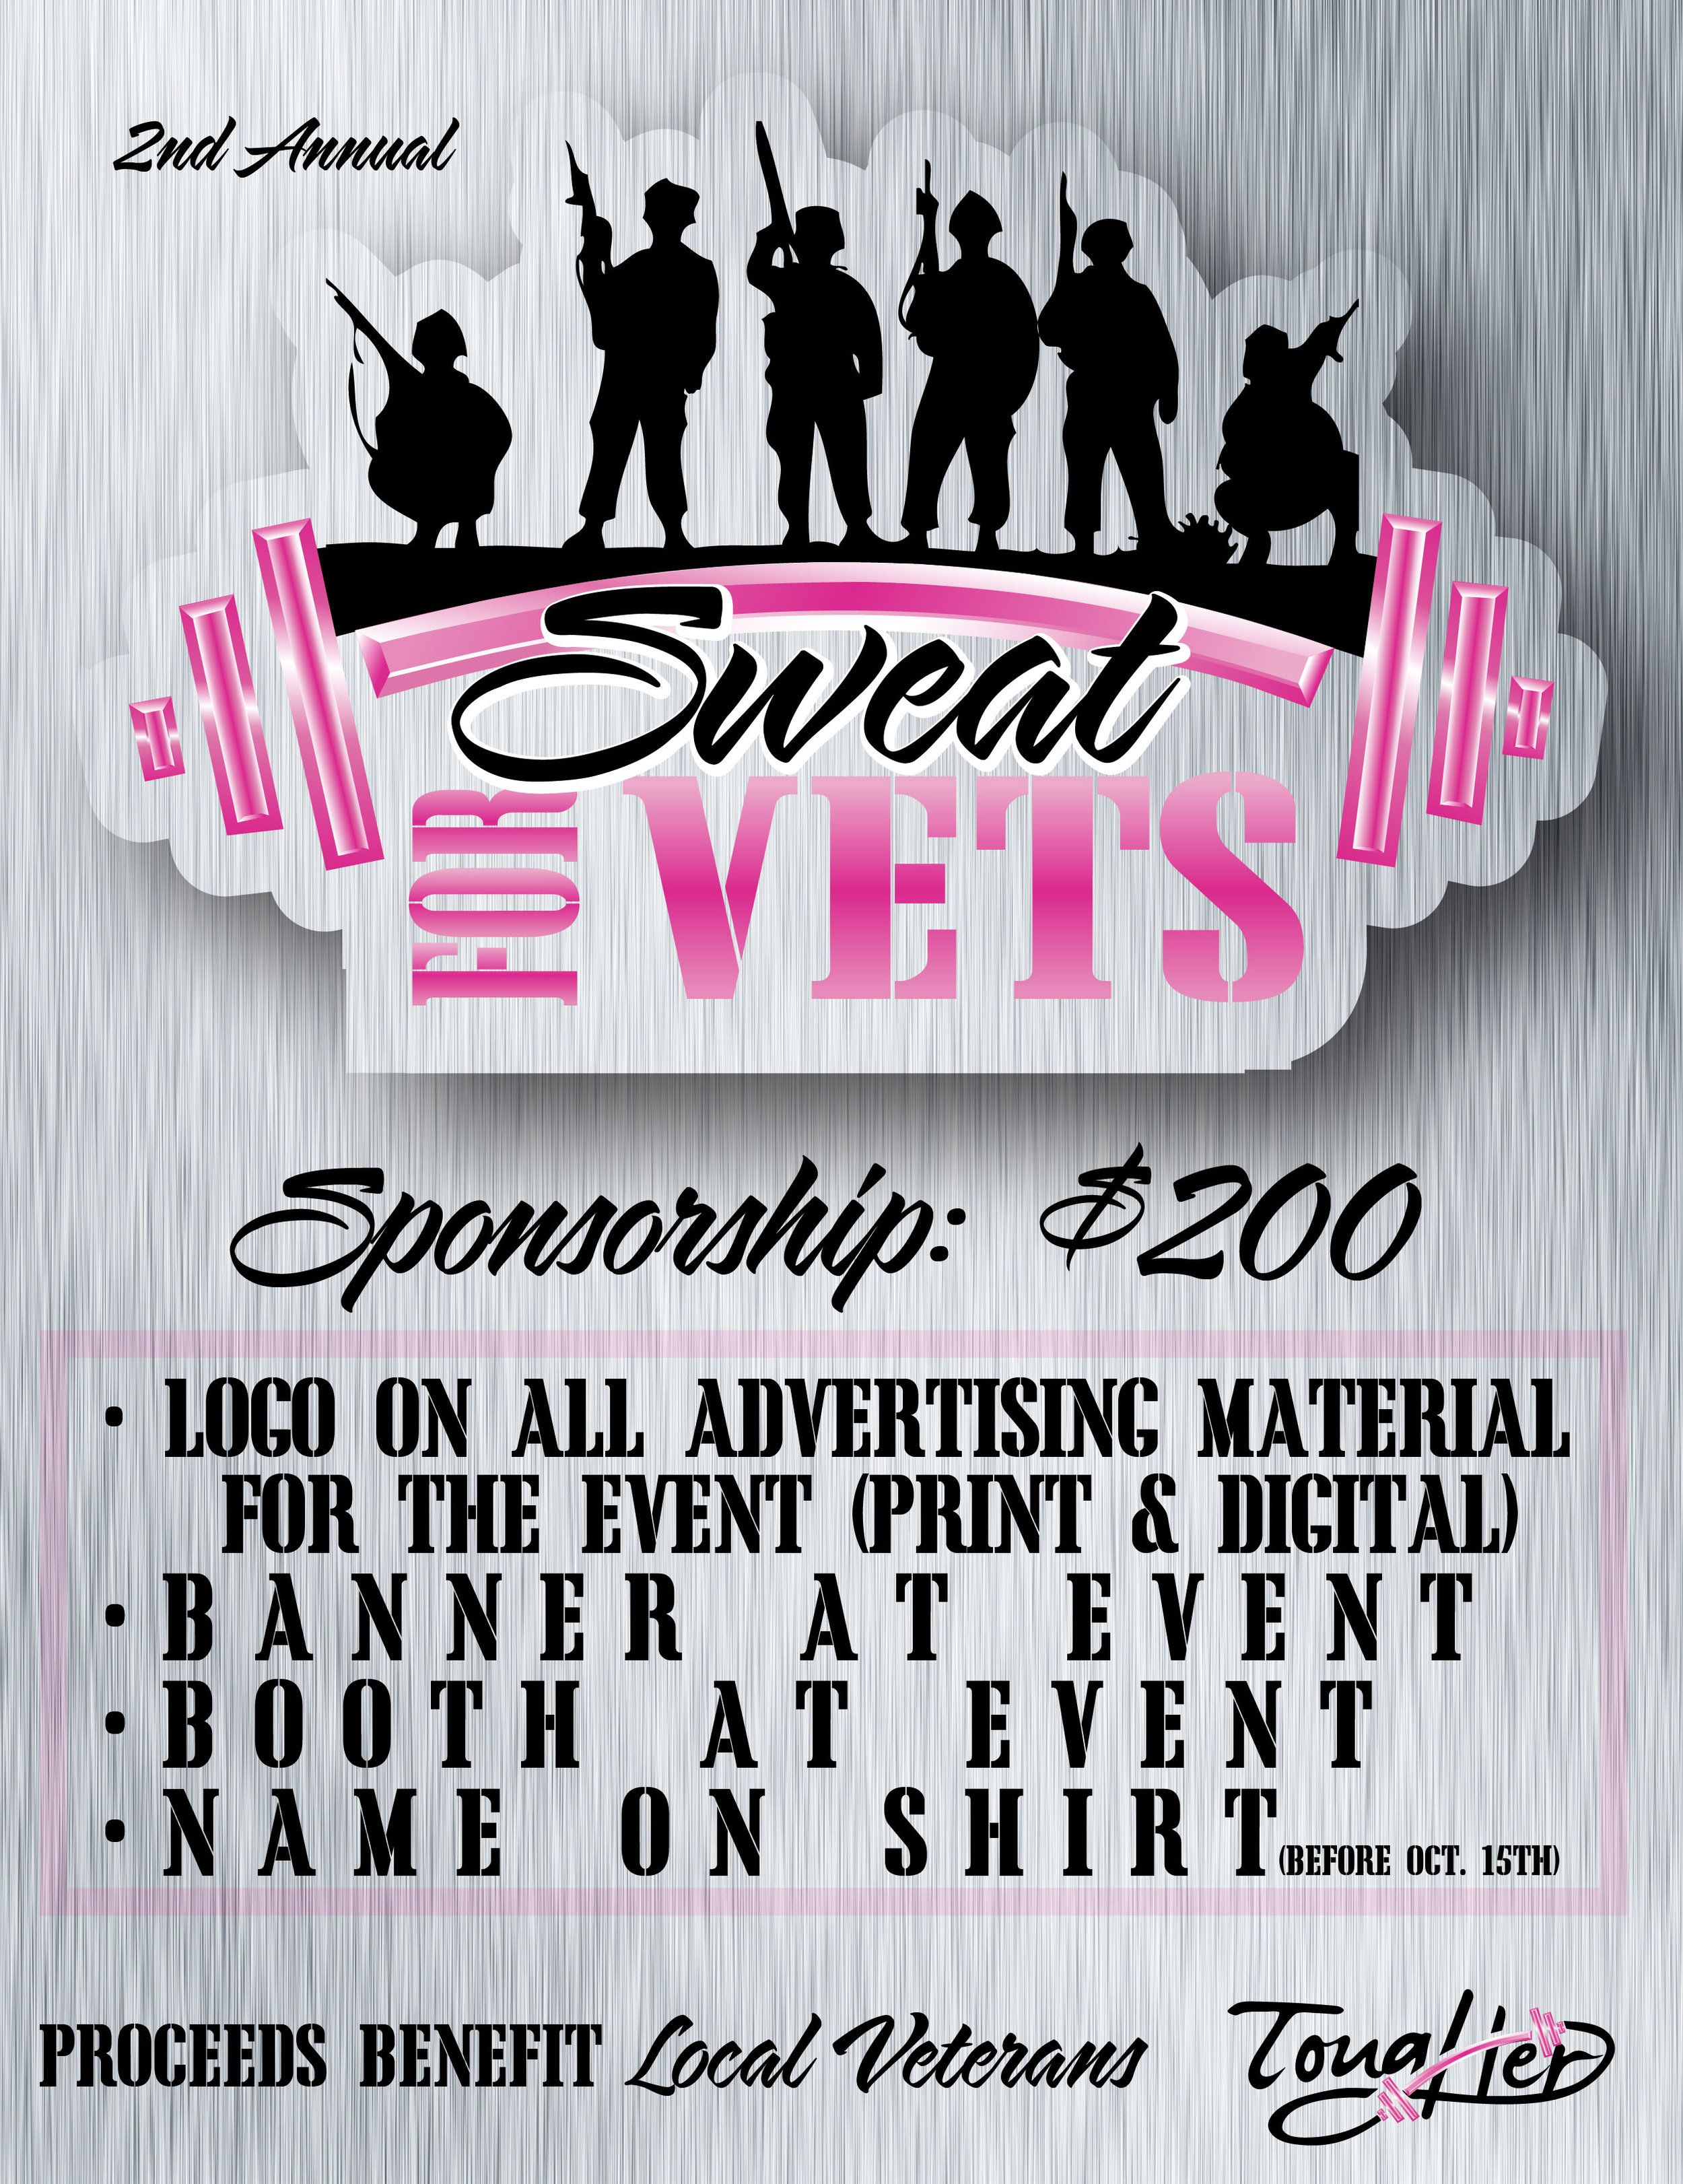 Sweat For Vets Sponsoship Sweat Advertising Material How To Raise Money